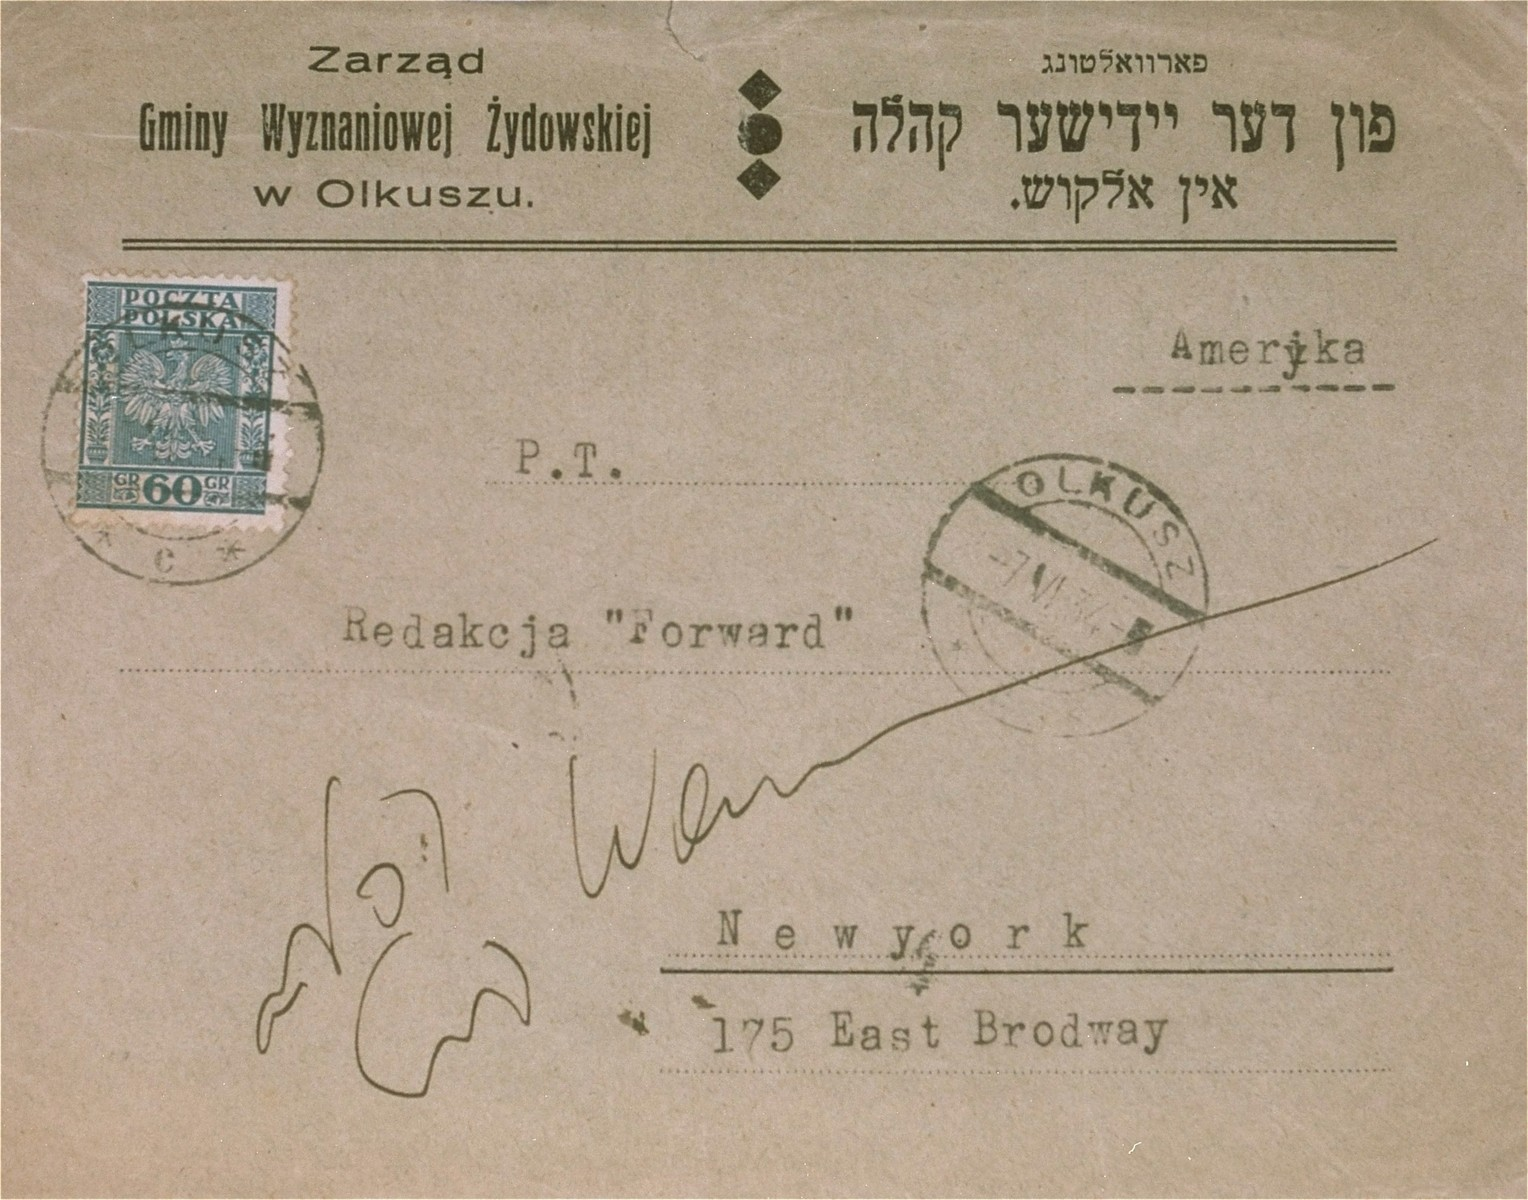 An envelope, sent from the offices of the Jewish Community in Olkusz, to the editors of the Forward, an Yiddish daily newspaper in New York City.